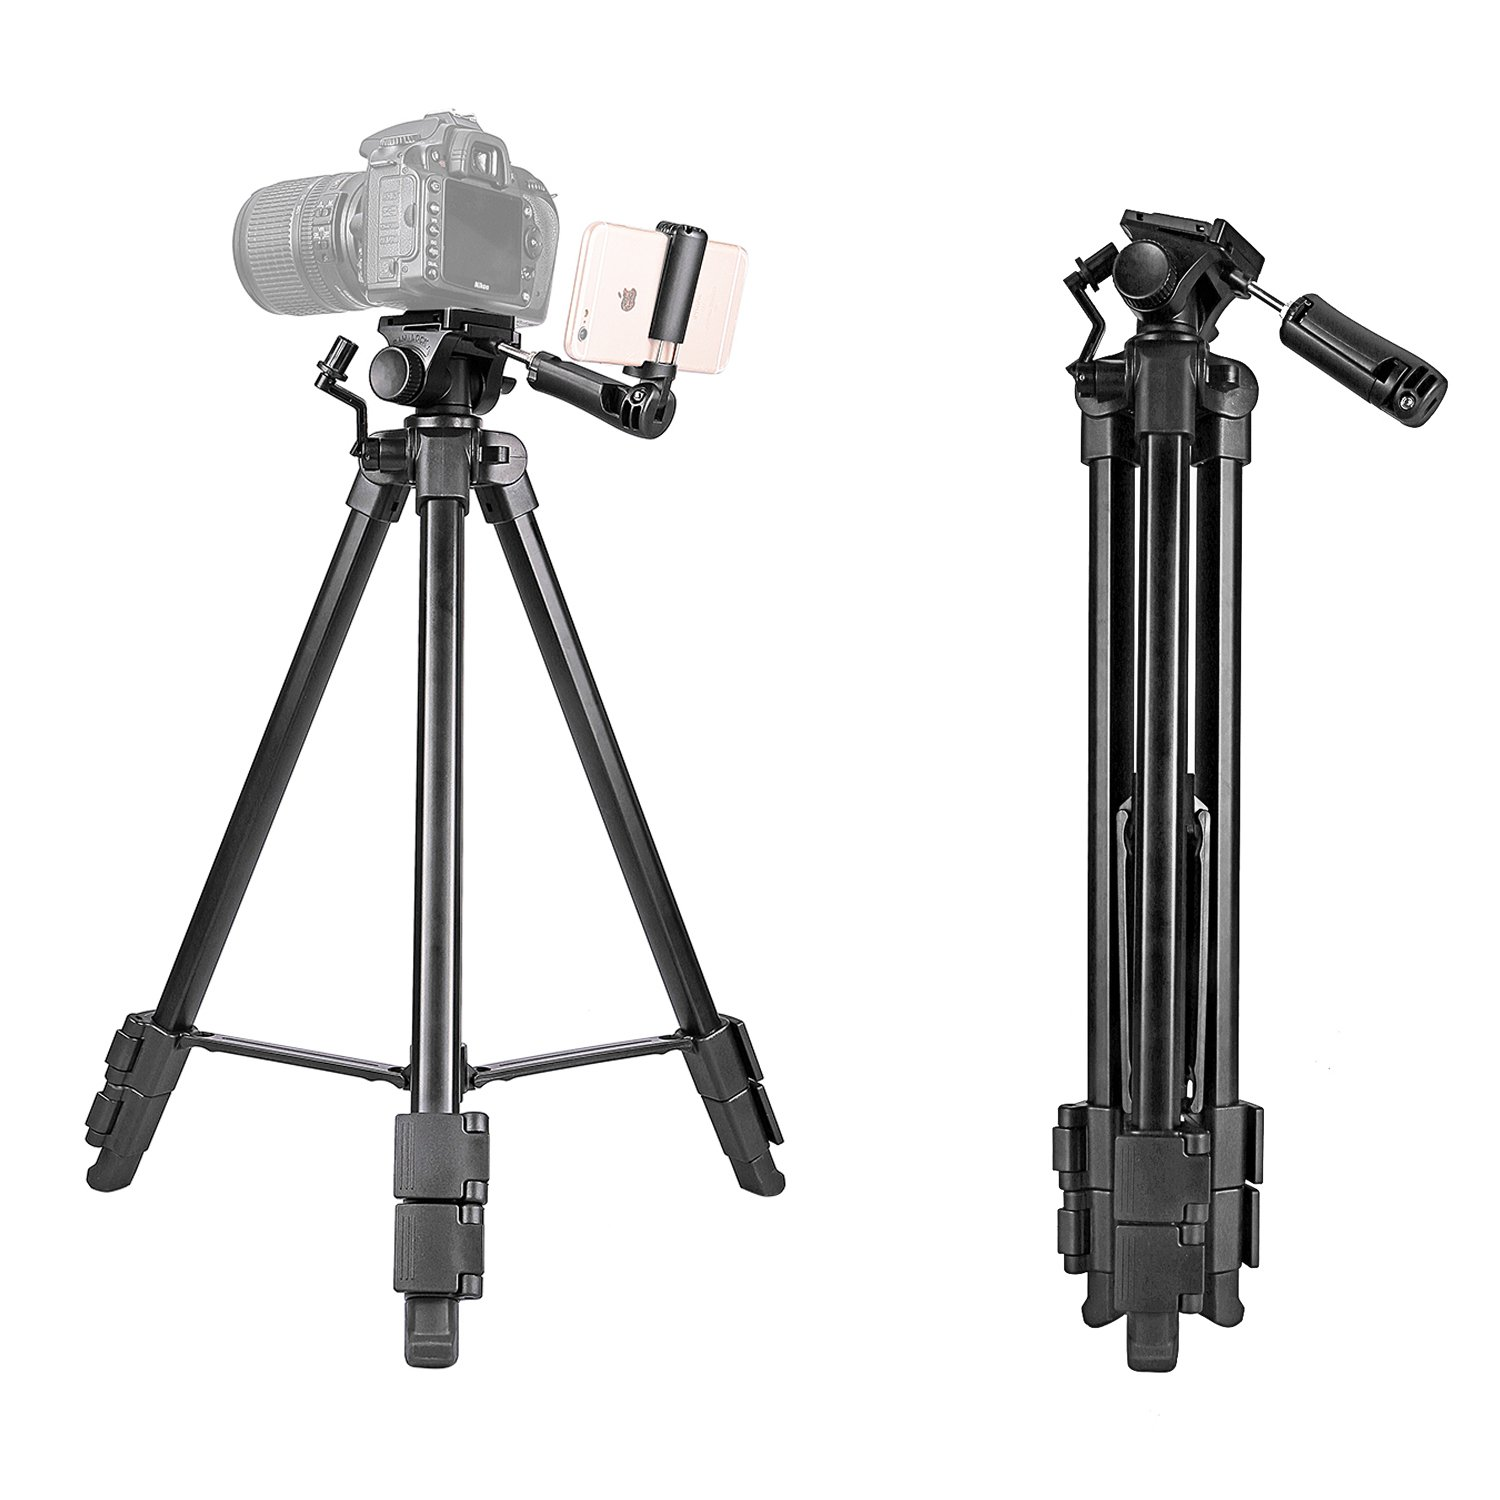 Kamisafe 57 Inch Digital SLR Camera Aluminum Travel Portable Tripod with Carry Bag